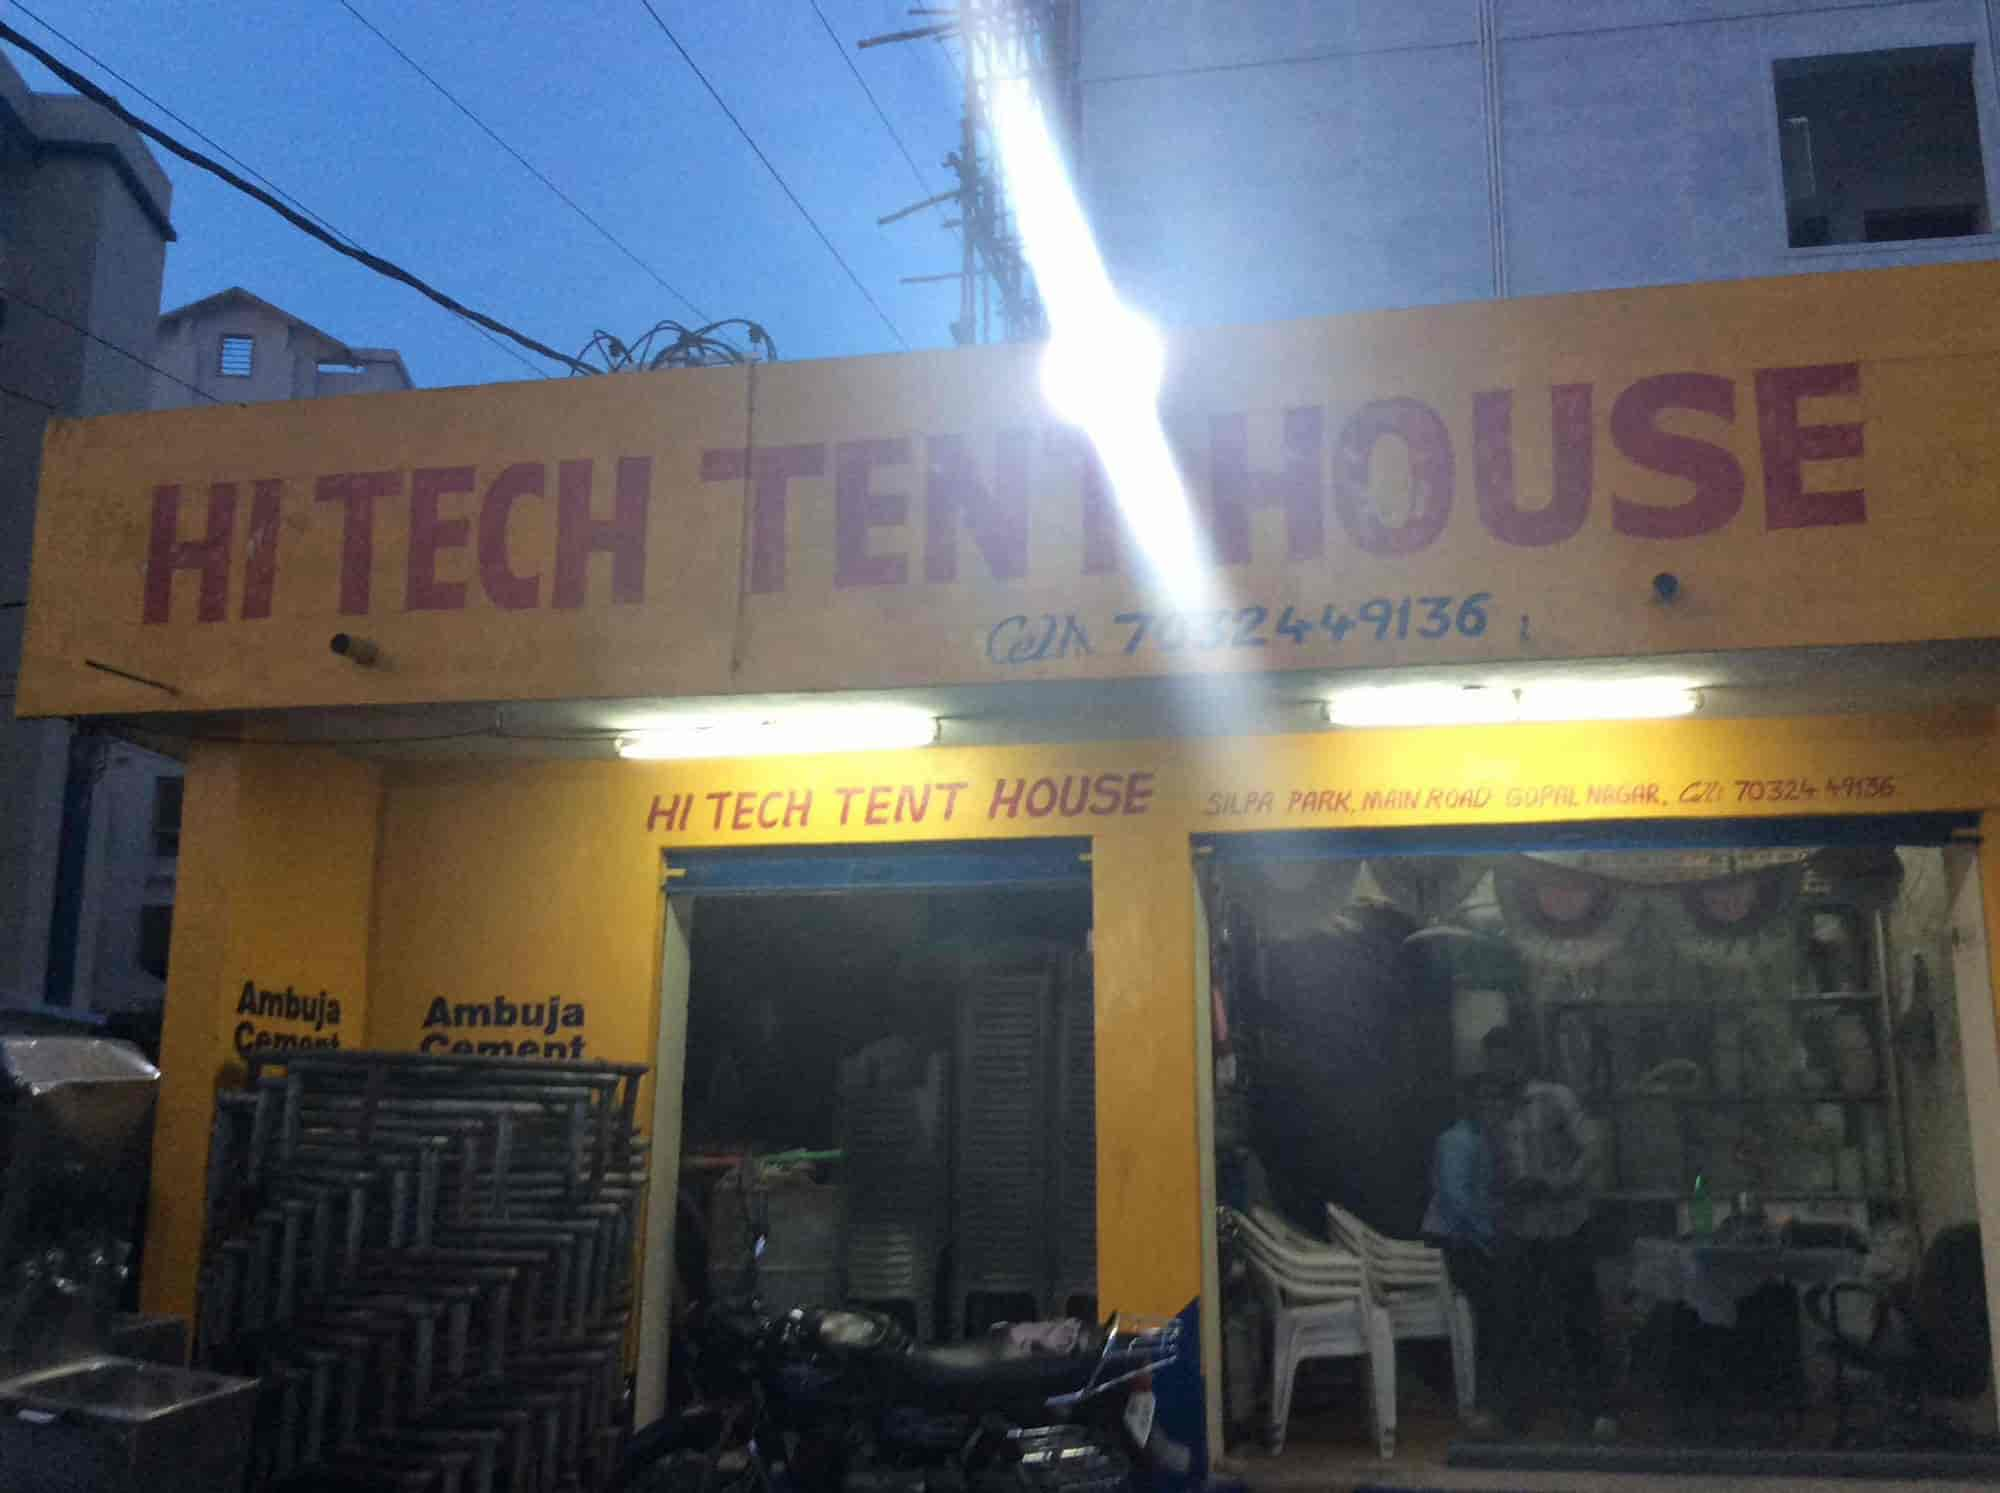 Hi Tech Tent House & Hi Tech Tent House Miyapur - Tent House in Hyderabad - Justdial